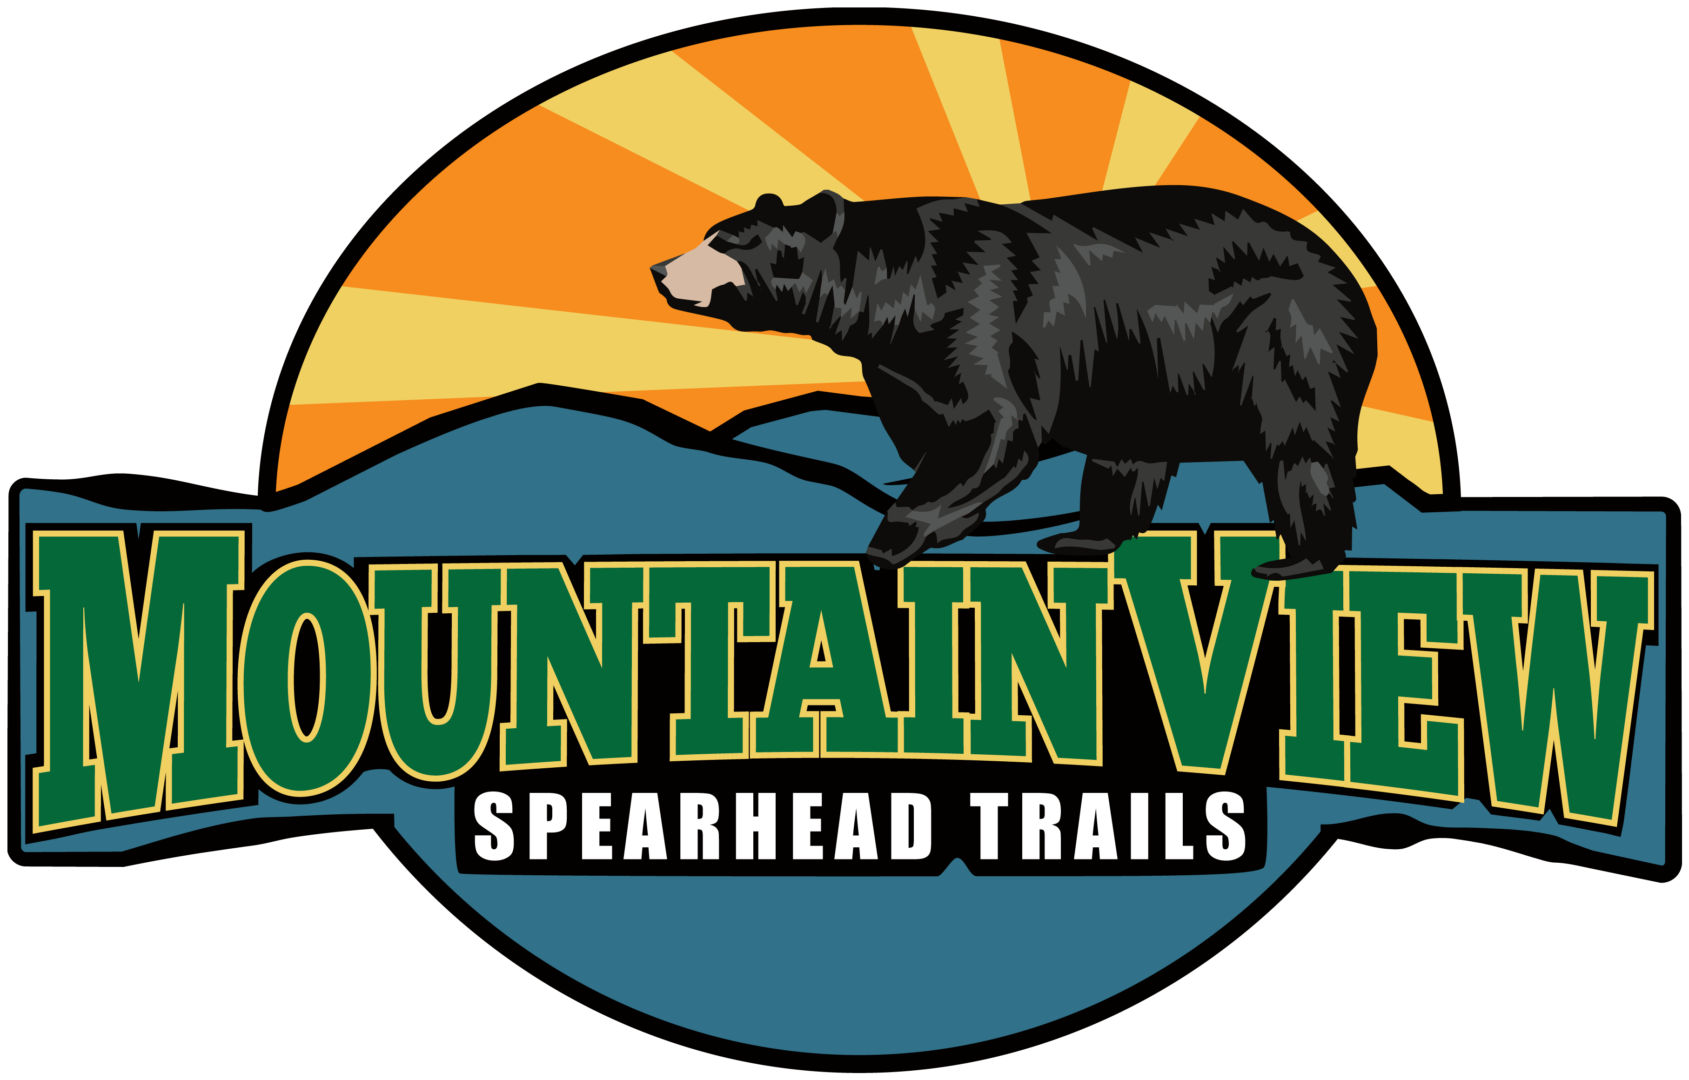 https://spearheadtrails.com/wp-content/uploads/2020/07/mountain-view3.png